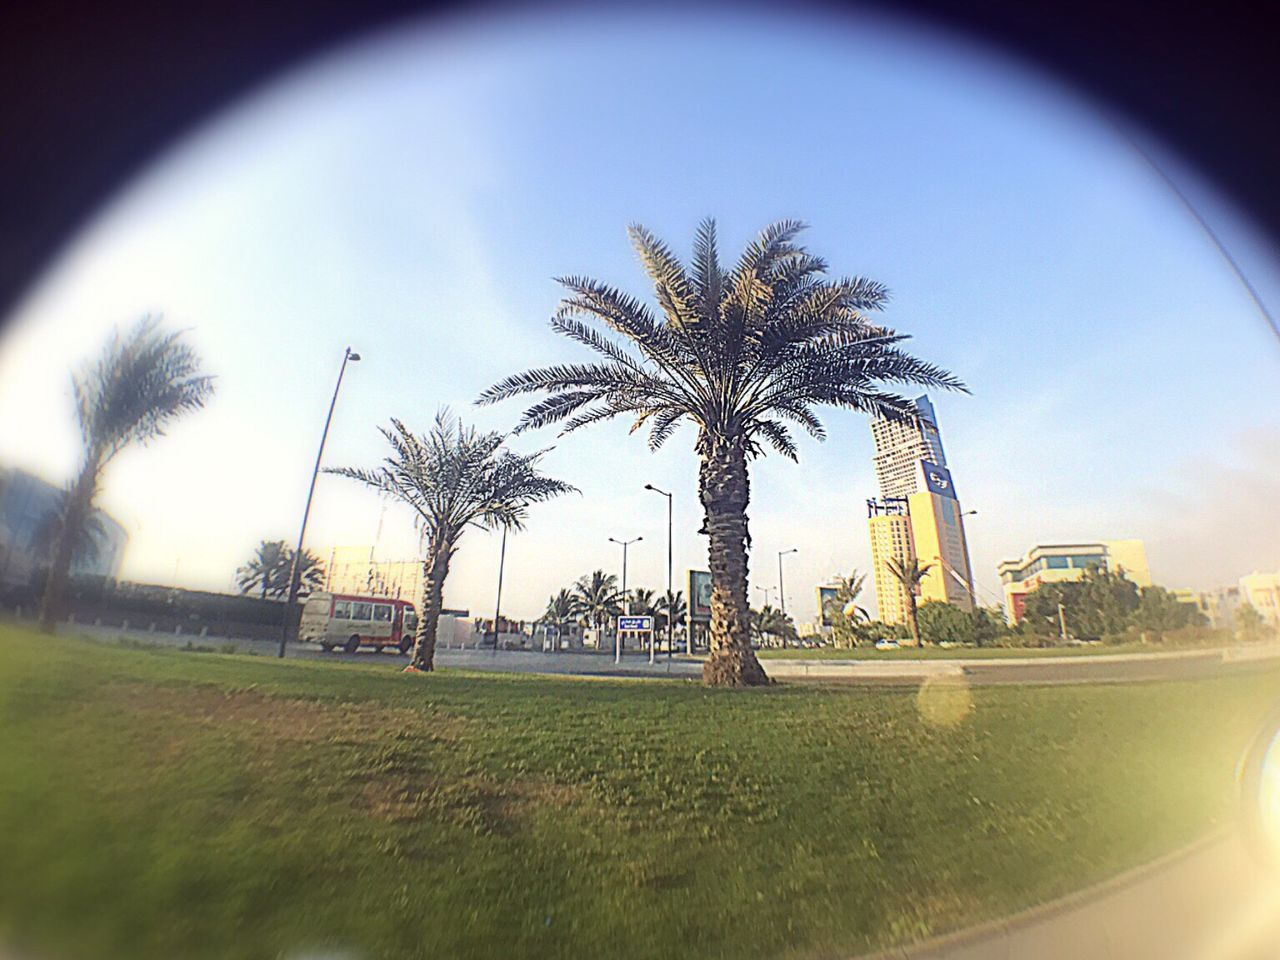 palm tree, sky, grass, tree, no people, day, outdoors, city, architecture, nature, close-up